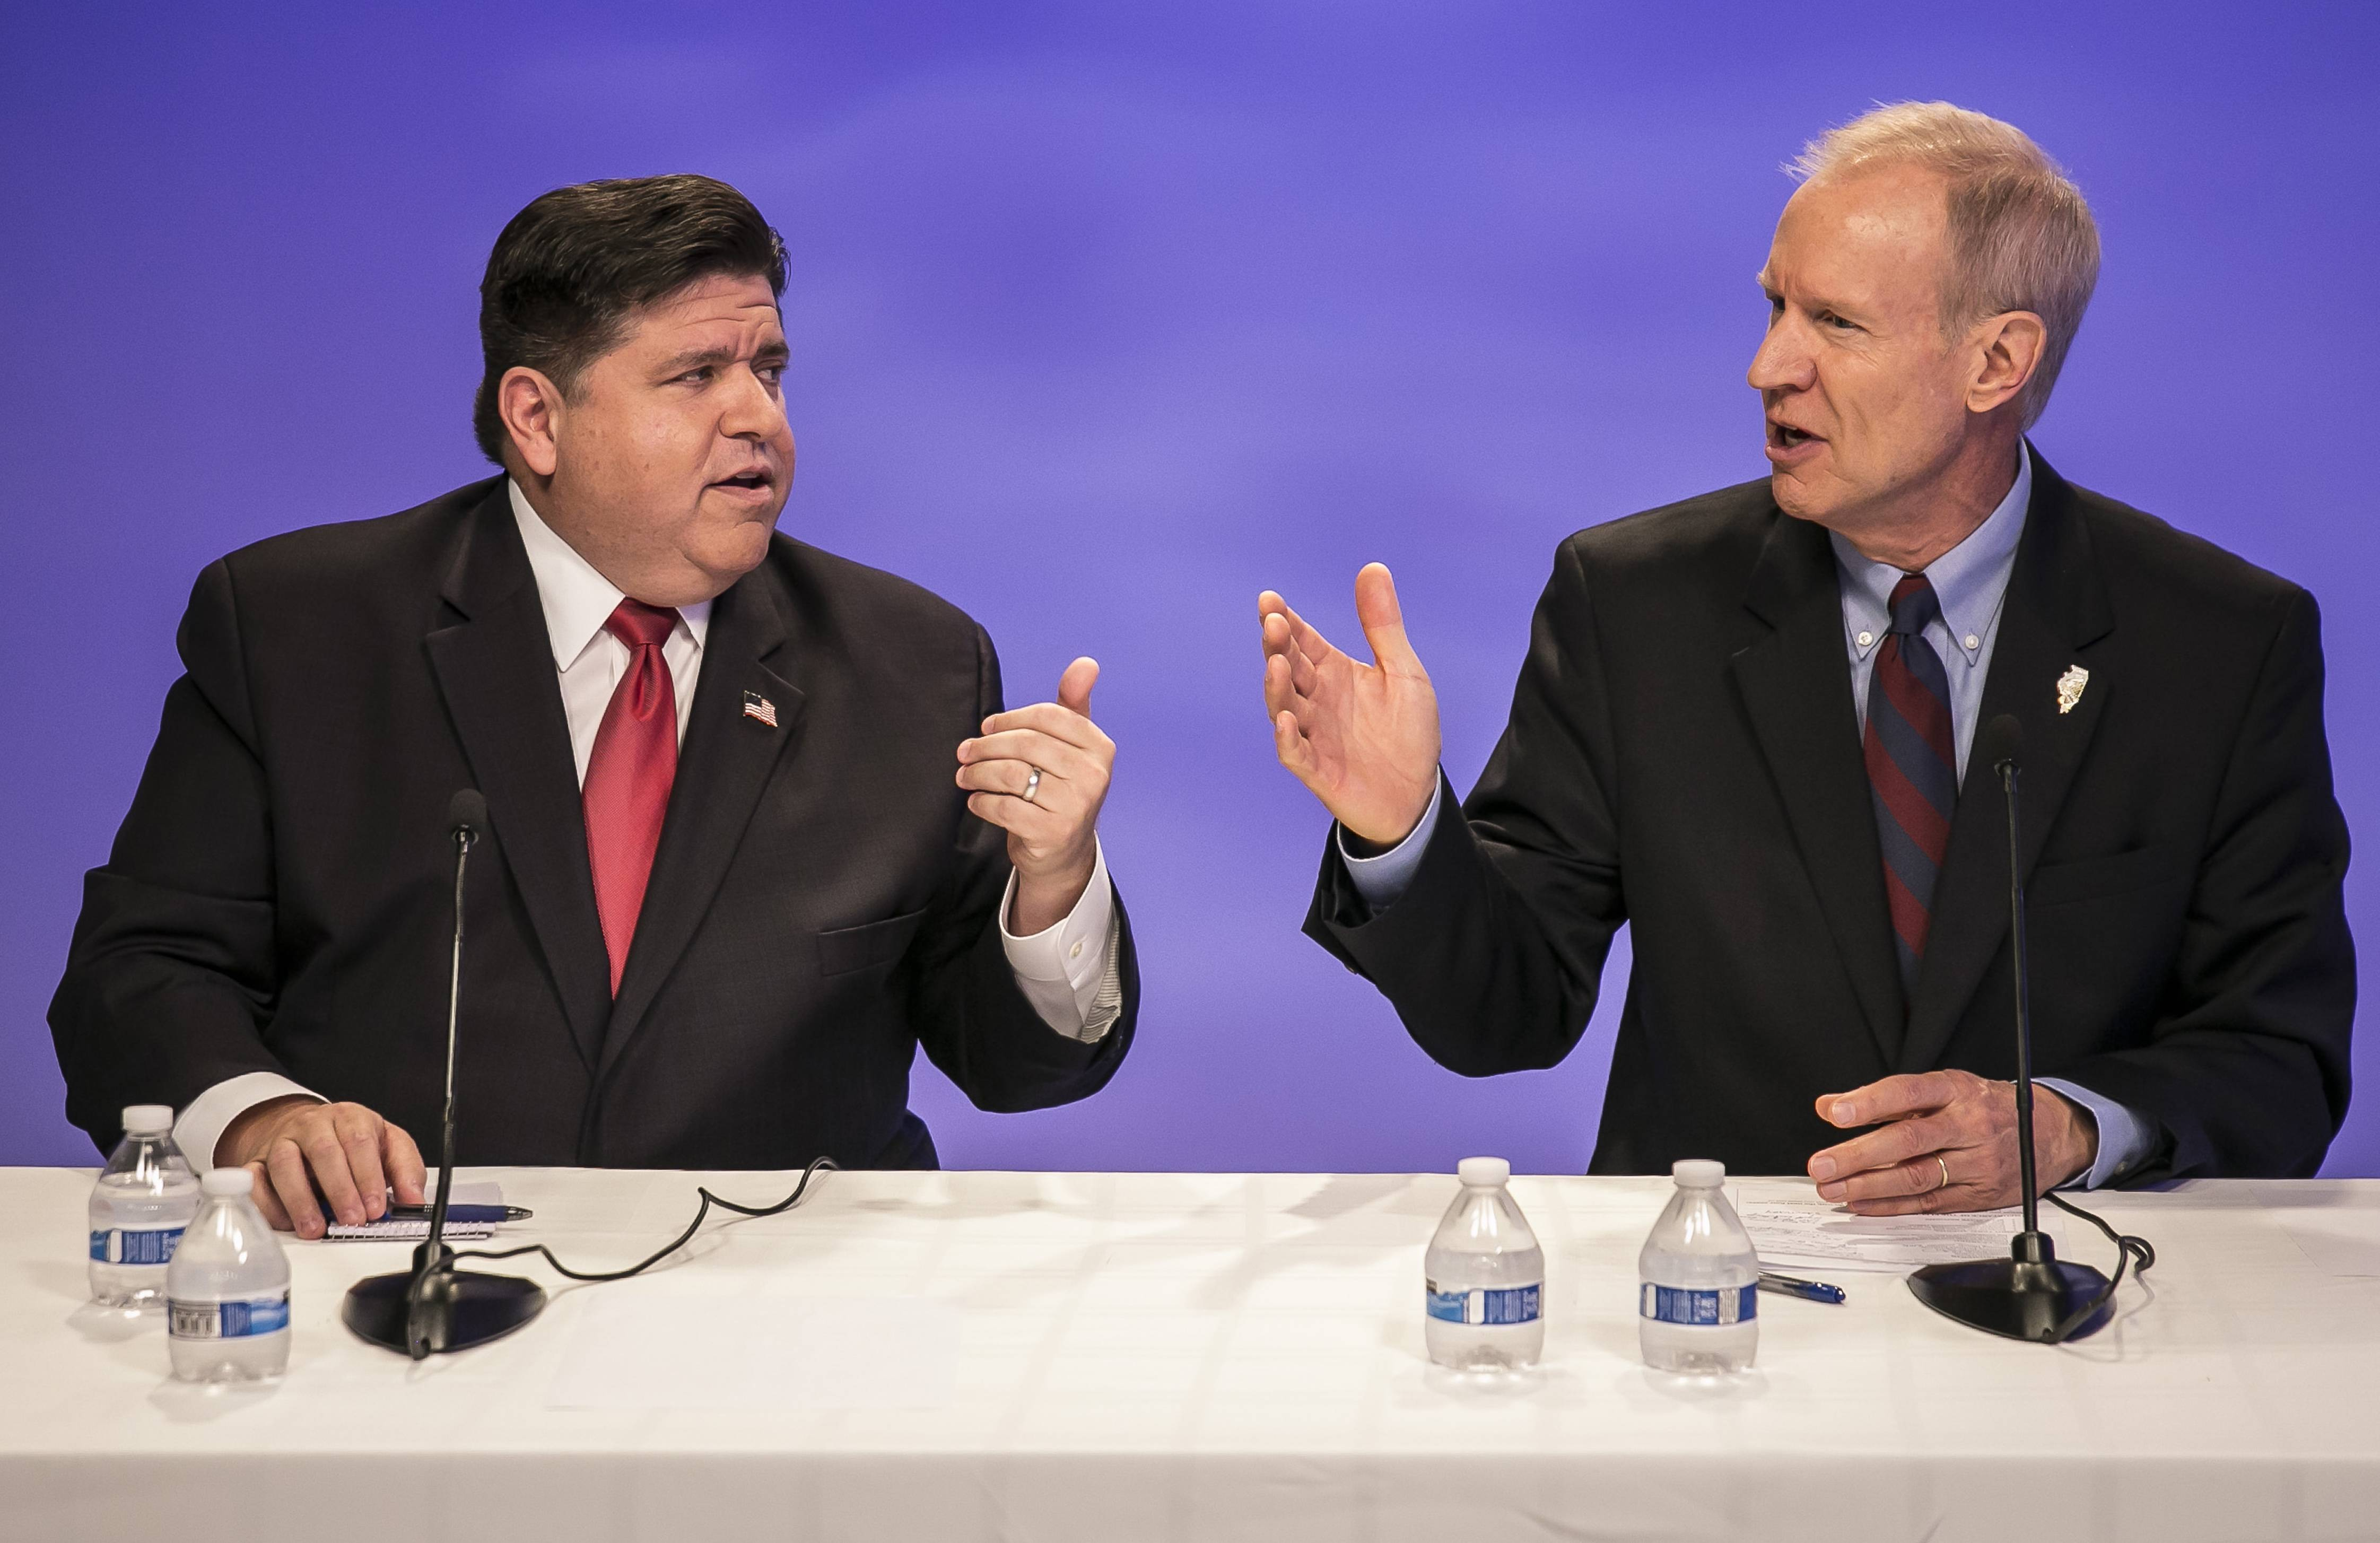 Democrat J.B. Pritzker, left, and Republican Bruce Rauner raised a combined $255 million, most of it from themselves, in their campaigns for Illinois governor.